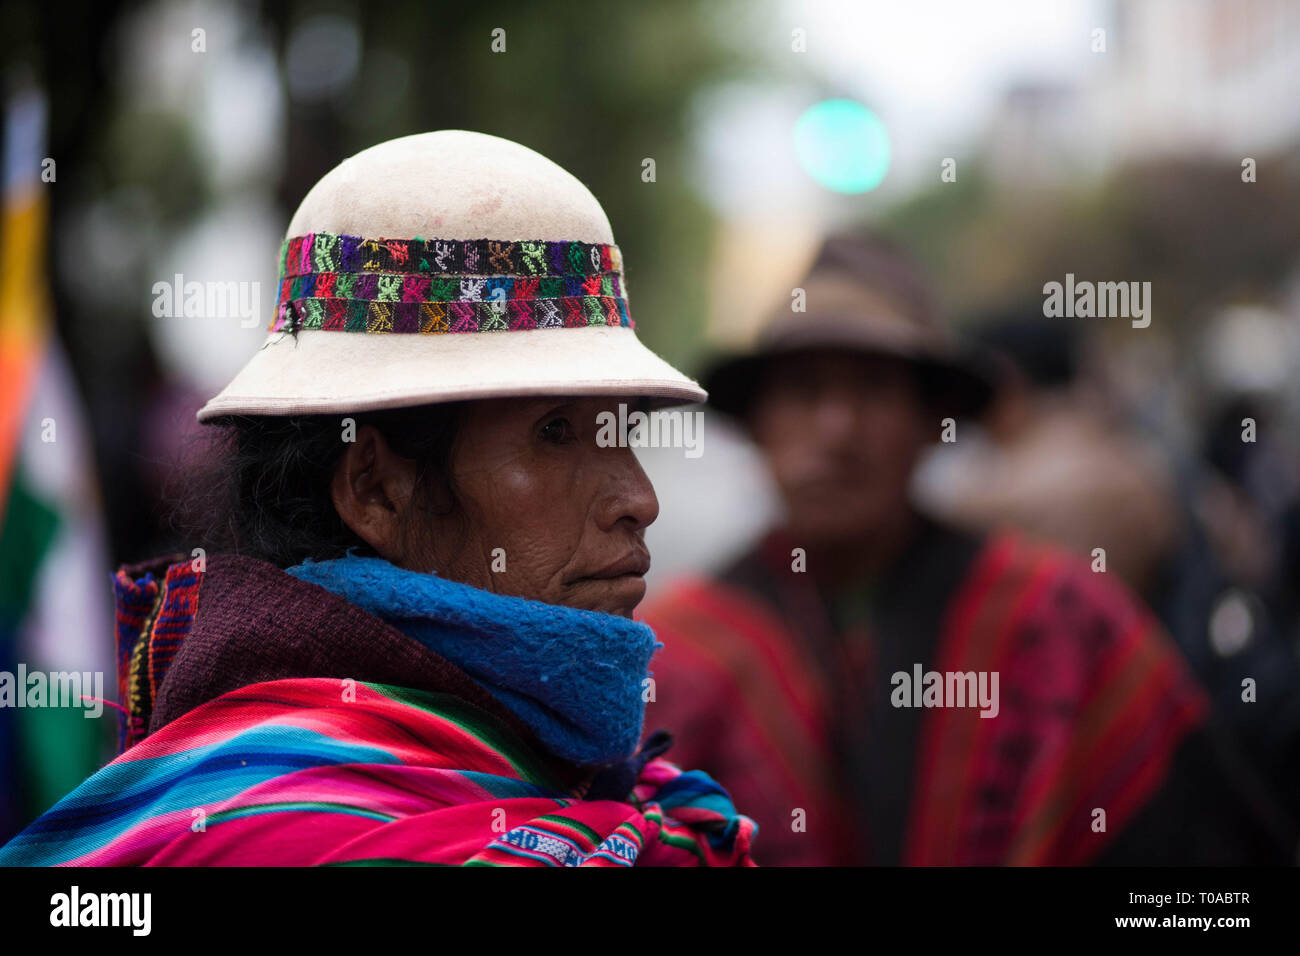 La Paz, Bolivia. 19th Mar 2019. After a 40-day trek, the Qhara Qhara nation march arrives in La Paz, demanding that their right to own t communal and ancestral lands be respected. ed. (Photo: Gaston Brito/Fotoarena) Credit: Foto Arena LTDA/Alamy Live News - Stock Image